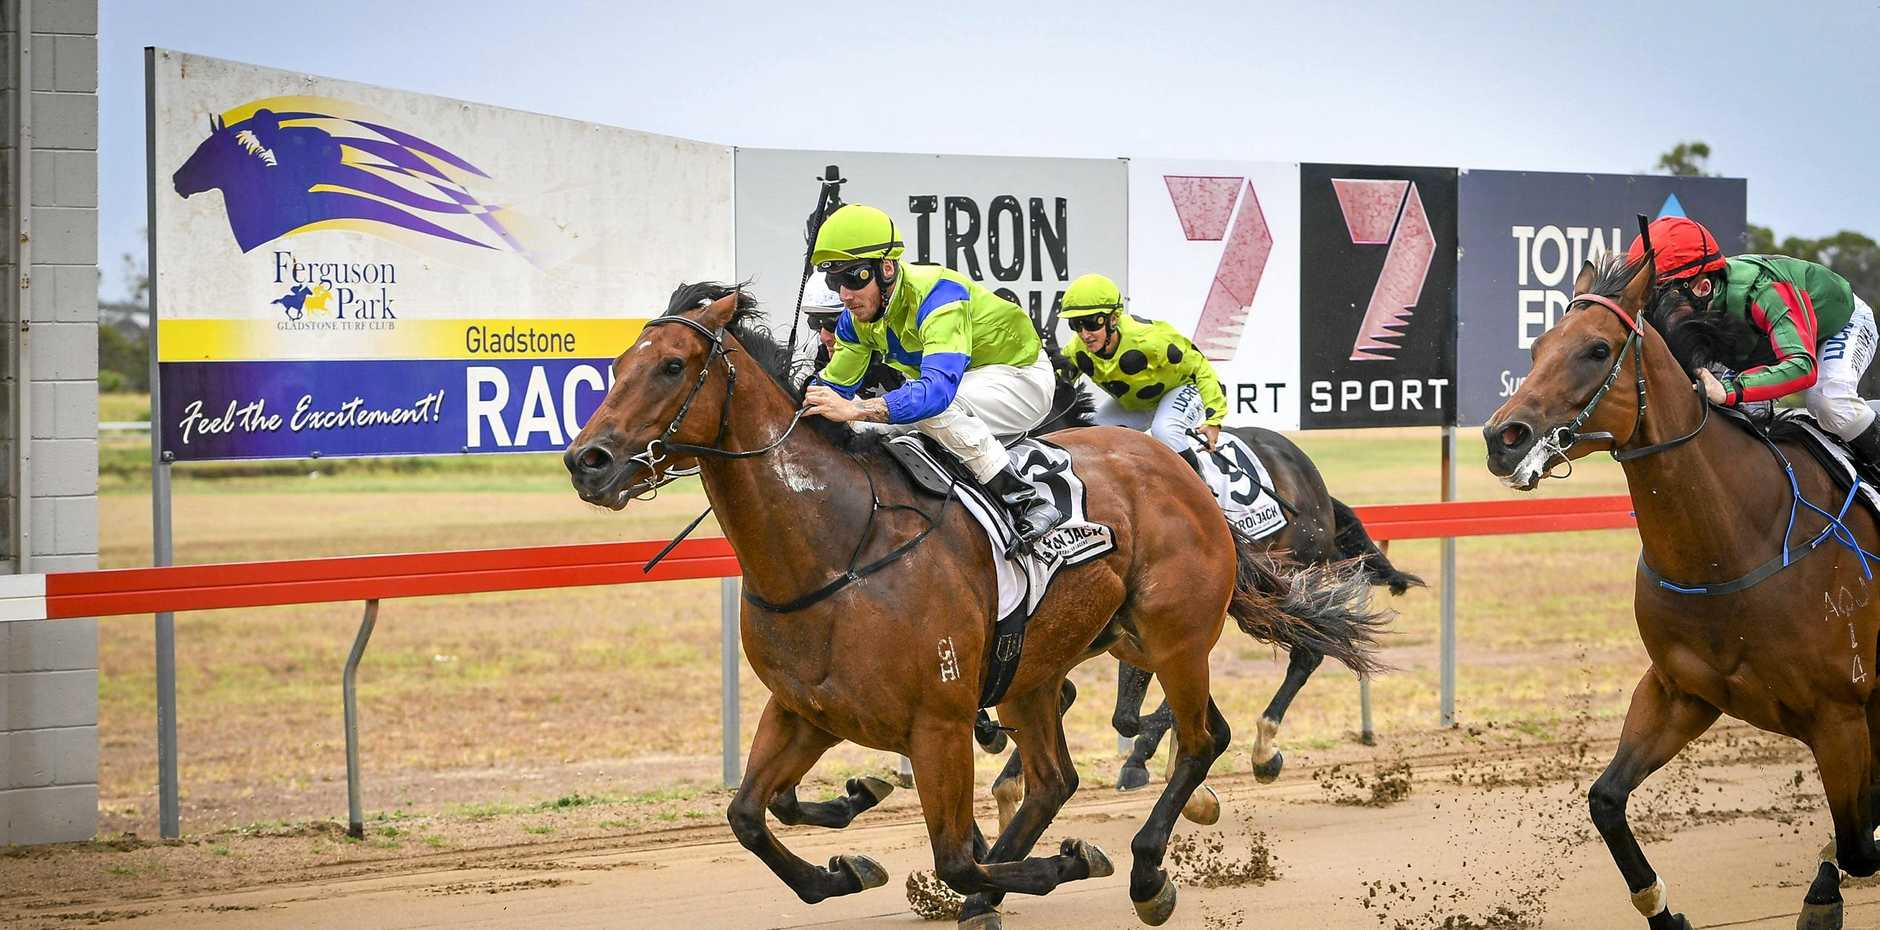 FIRST: Roma-based It's Wanted ridden by Wayne Baker won Race 1 at Gladstone Turf Club's March race day.